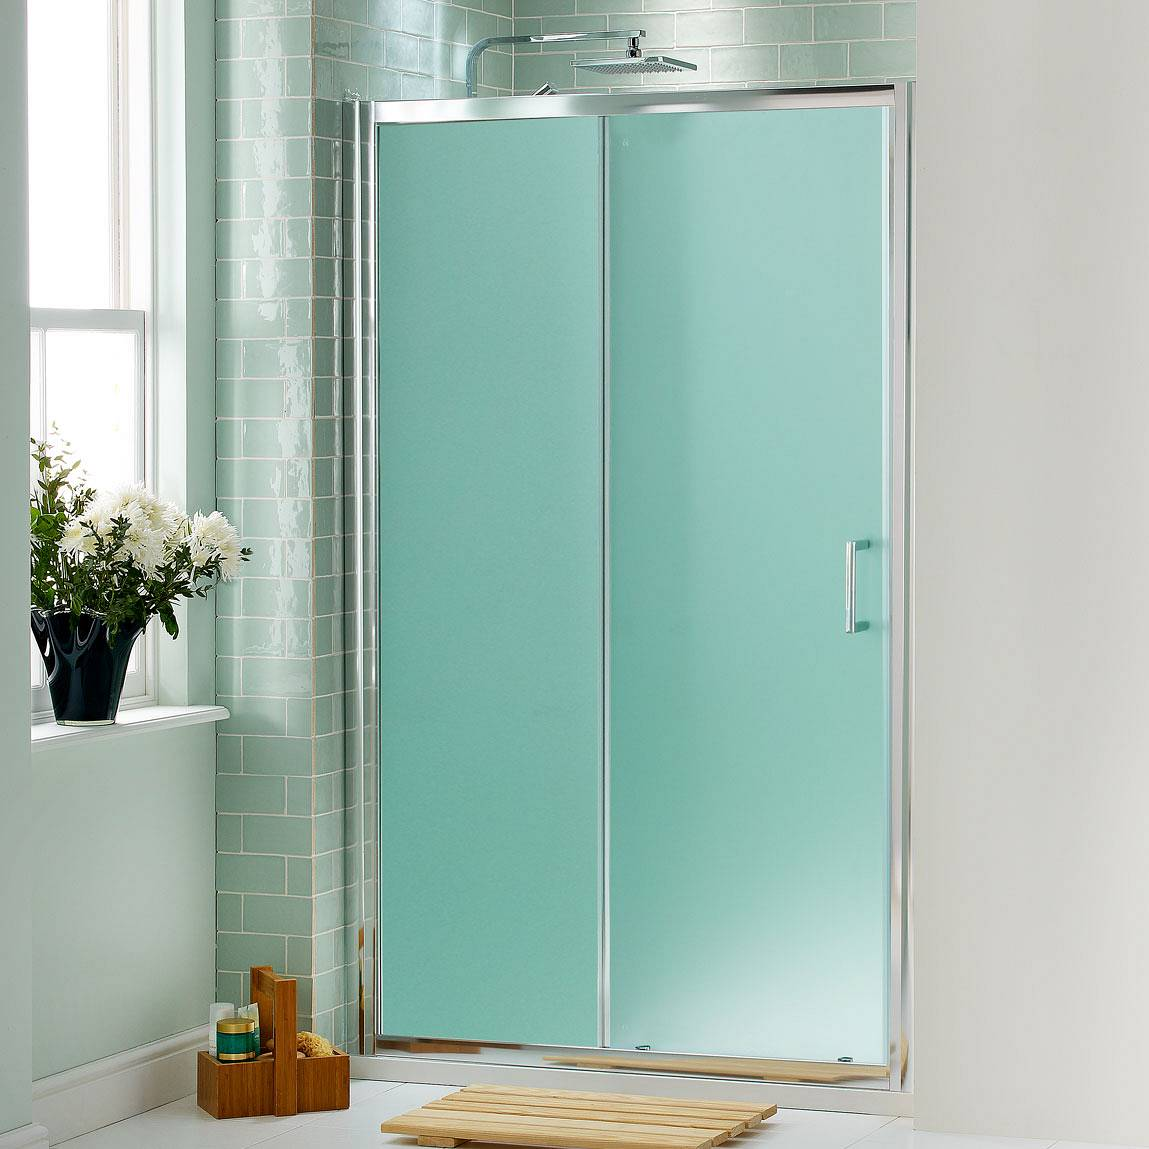 Bath Options With Shower Angle Shower Without Shower What